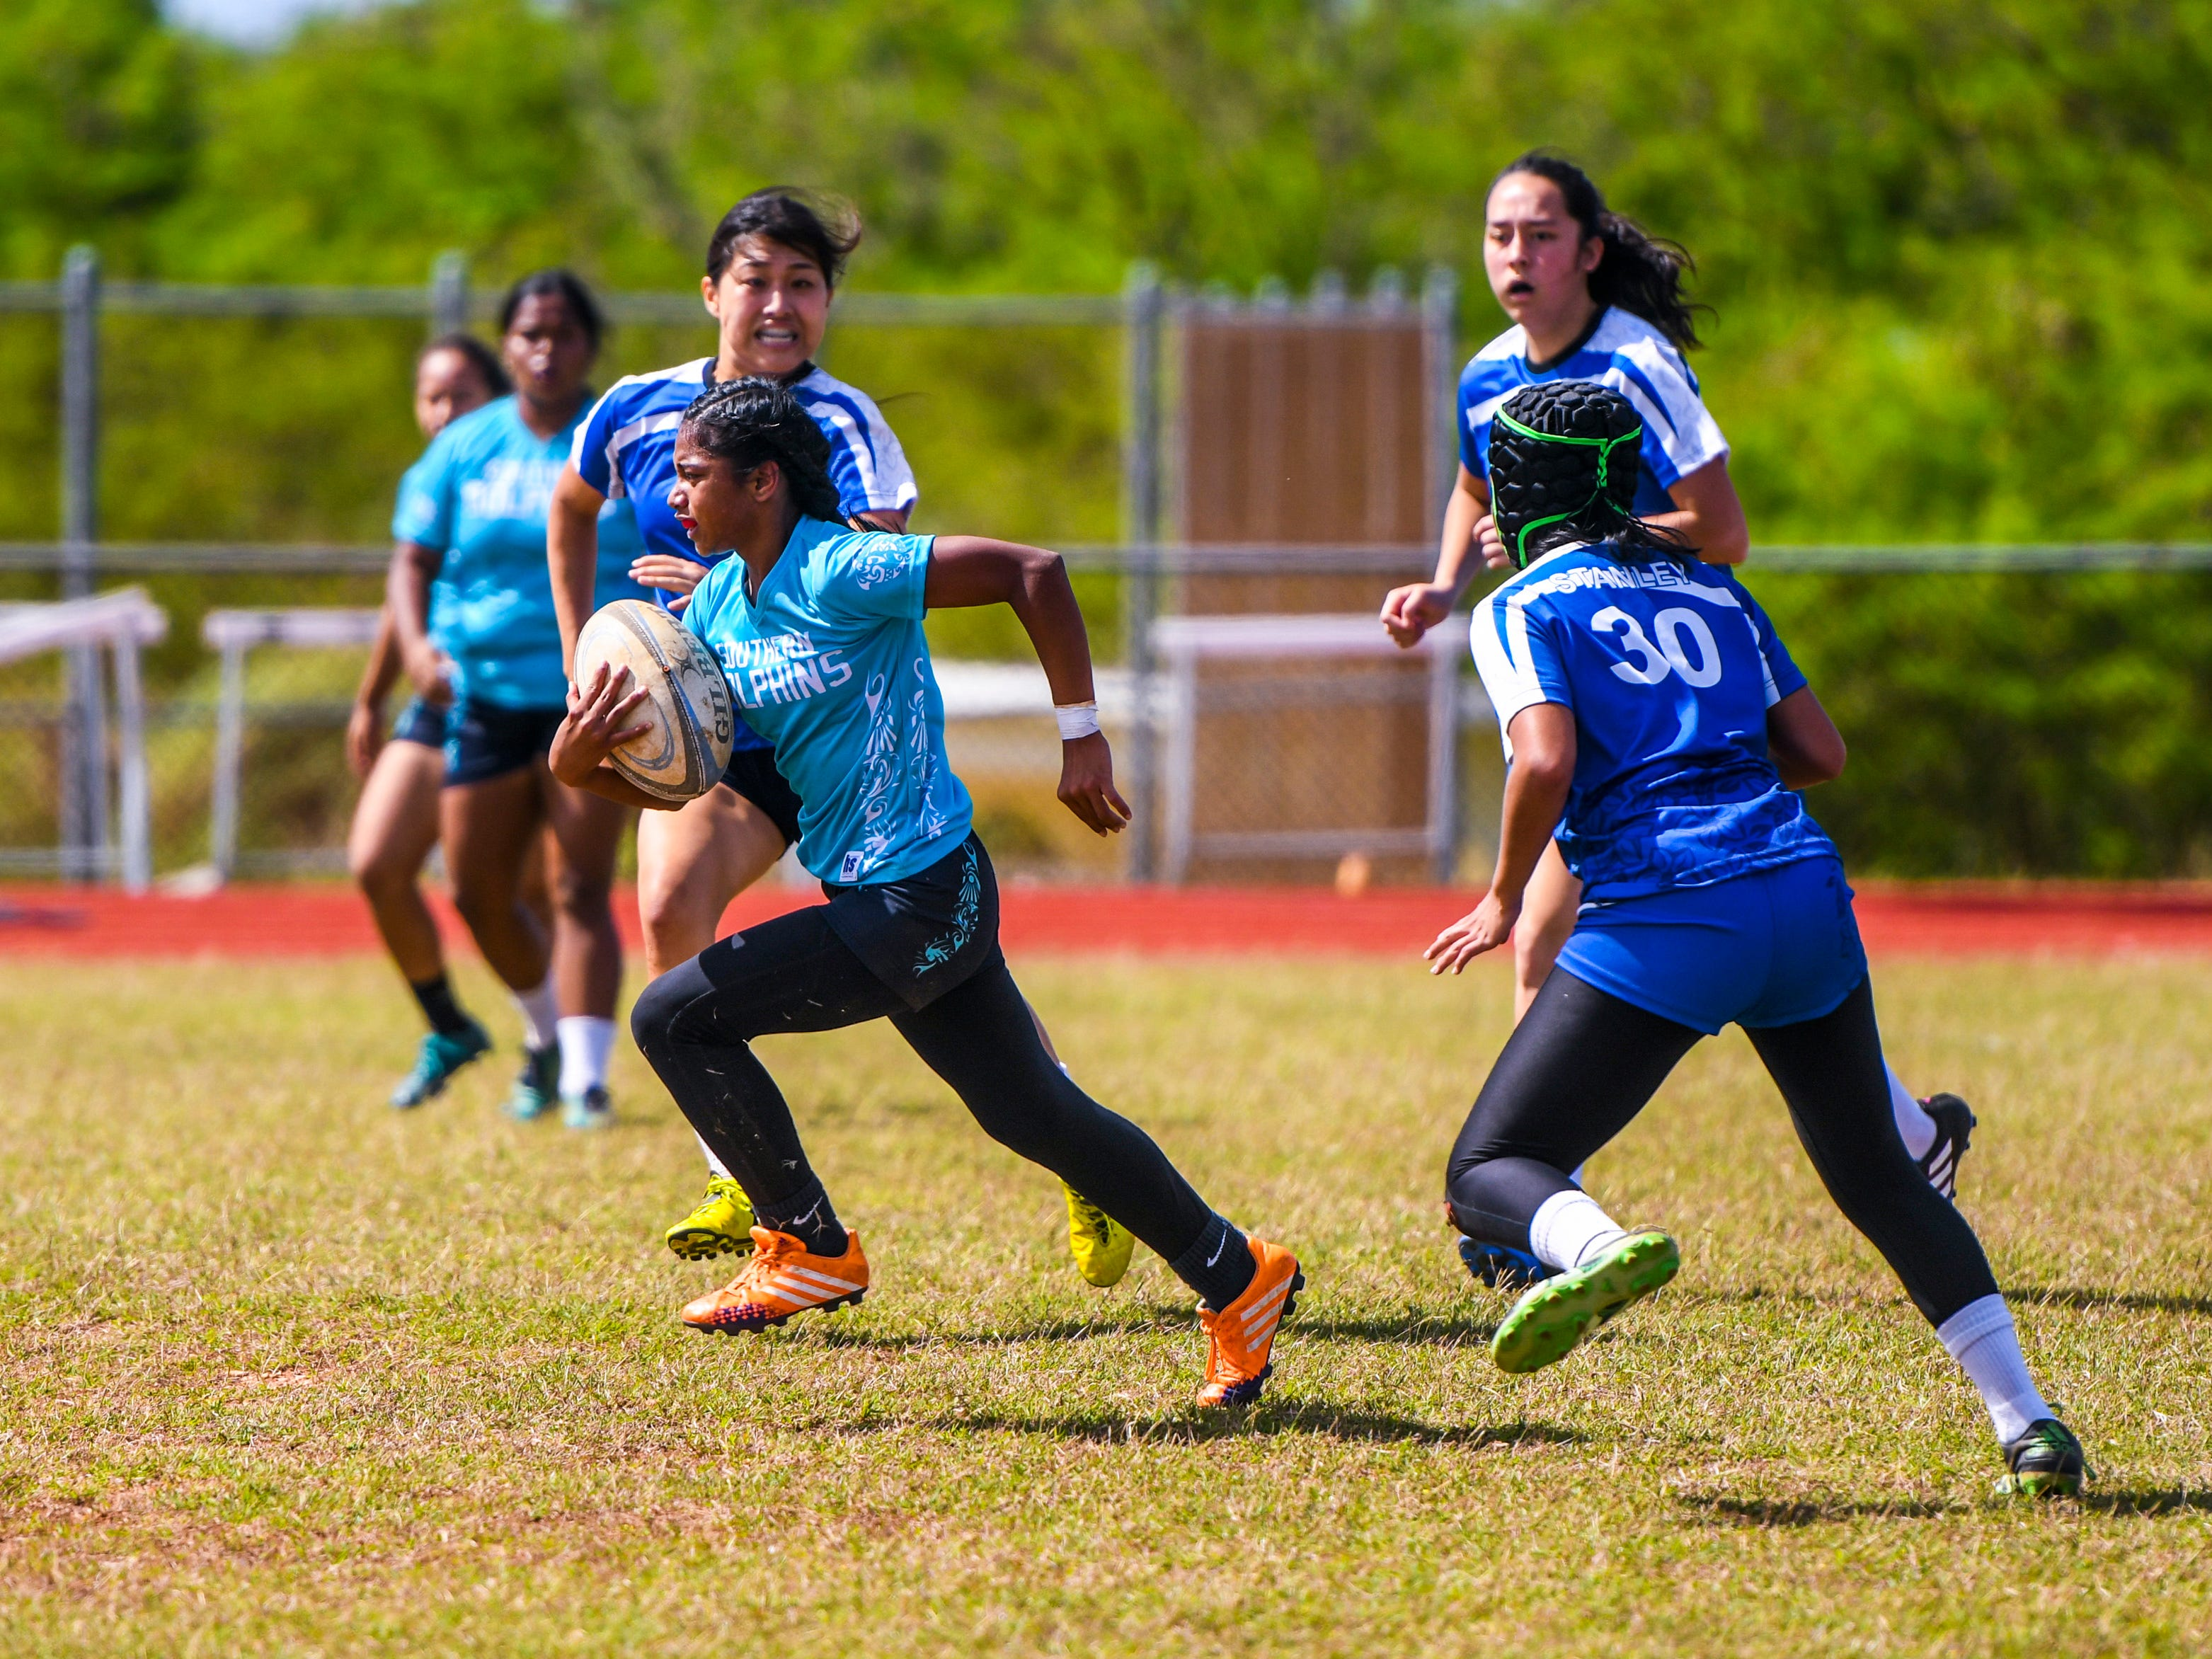 Southern High School Dolphins' Liz Quintanilla bolts down the center to score her second try during a Girls Varsity IIAAG/GRFU rugby matchup with Academy of Our Lady Guam Cougars on Ramsey Field at the John F. Kennedy High School in Tamuning on Saturday, March 9, 2019. In the end, the Dolphins swam away with the victory with a final score of 24-5.